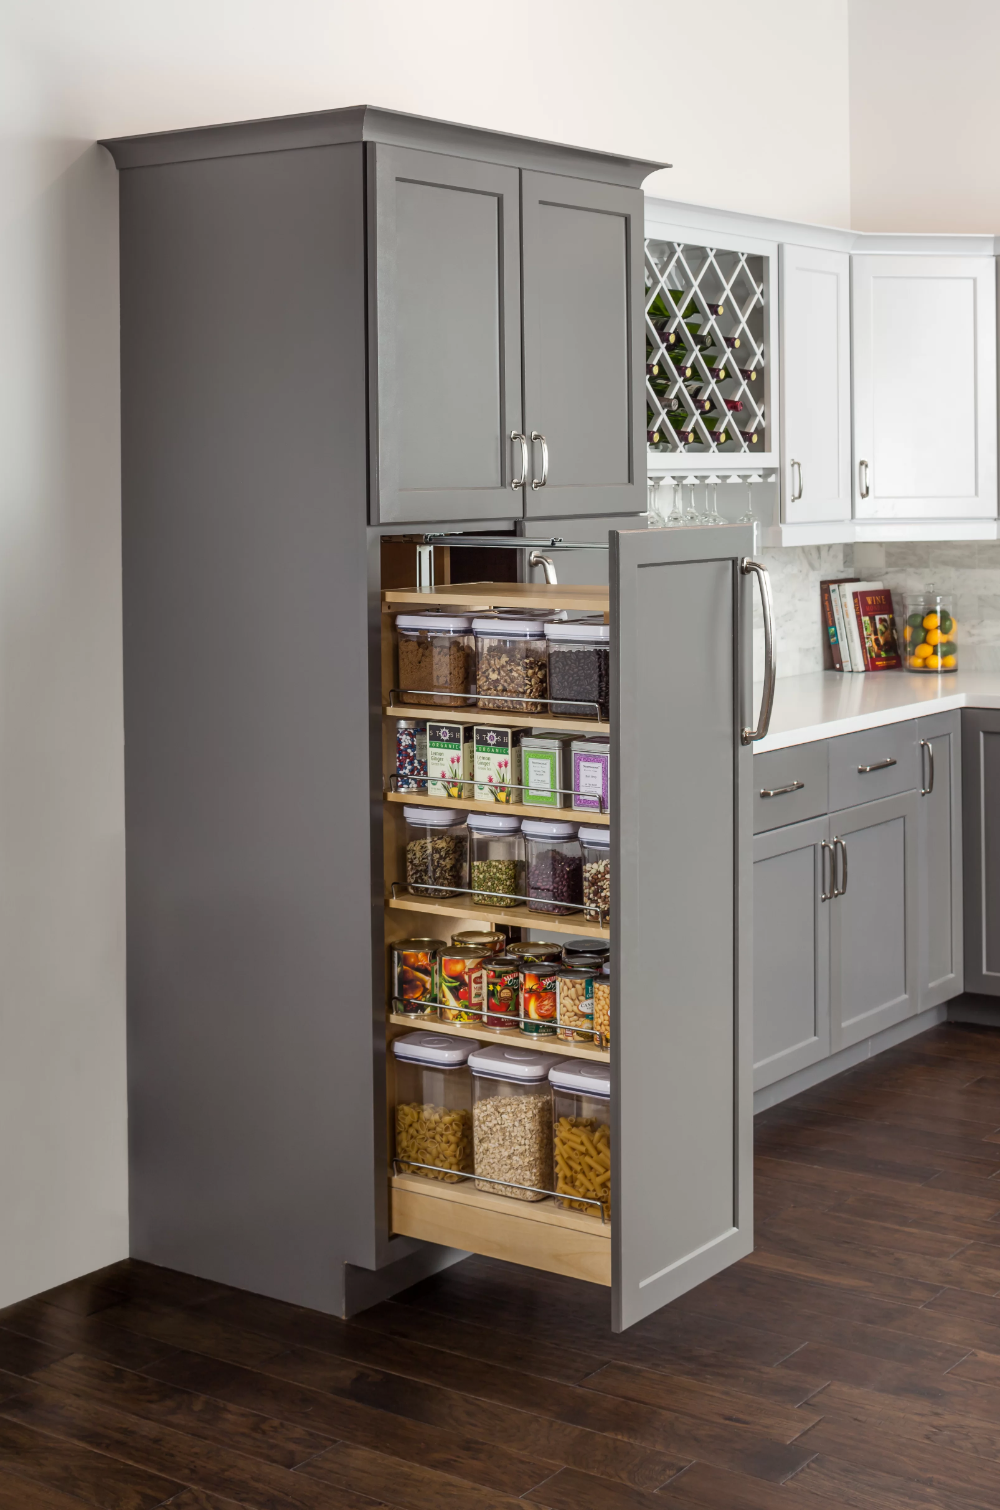 Wood Cabinet Pull Out Pantry In 2020 Kitchen Design Small Kitchen Decor Inspiration Home Decor Kitchen